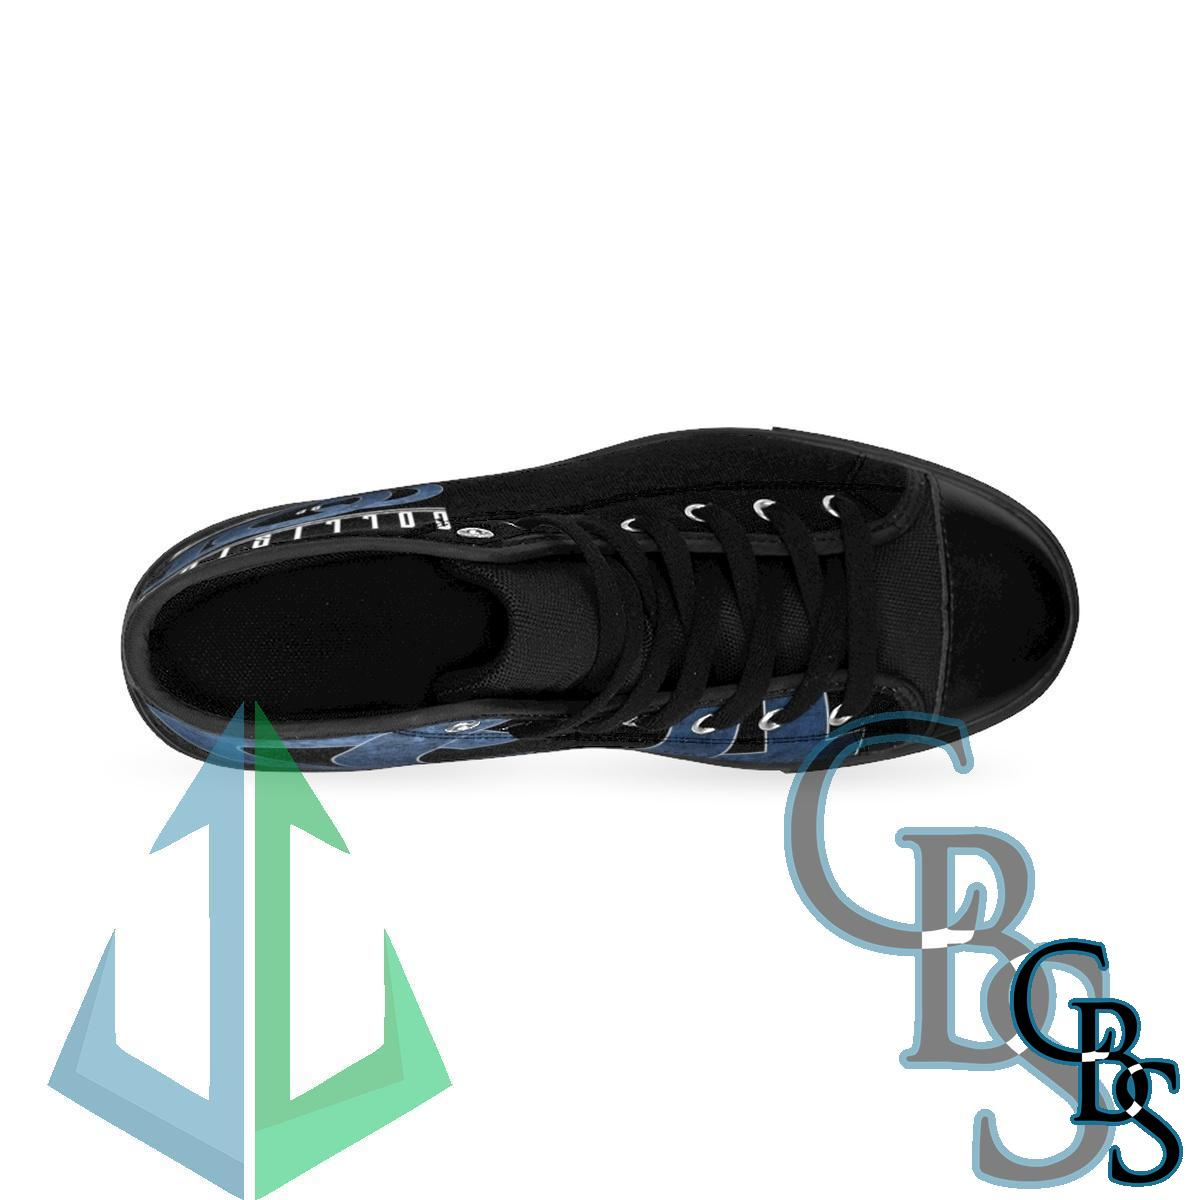 Collision of Innocence COI Men's High-top Sneakers